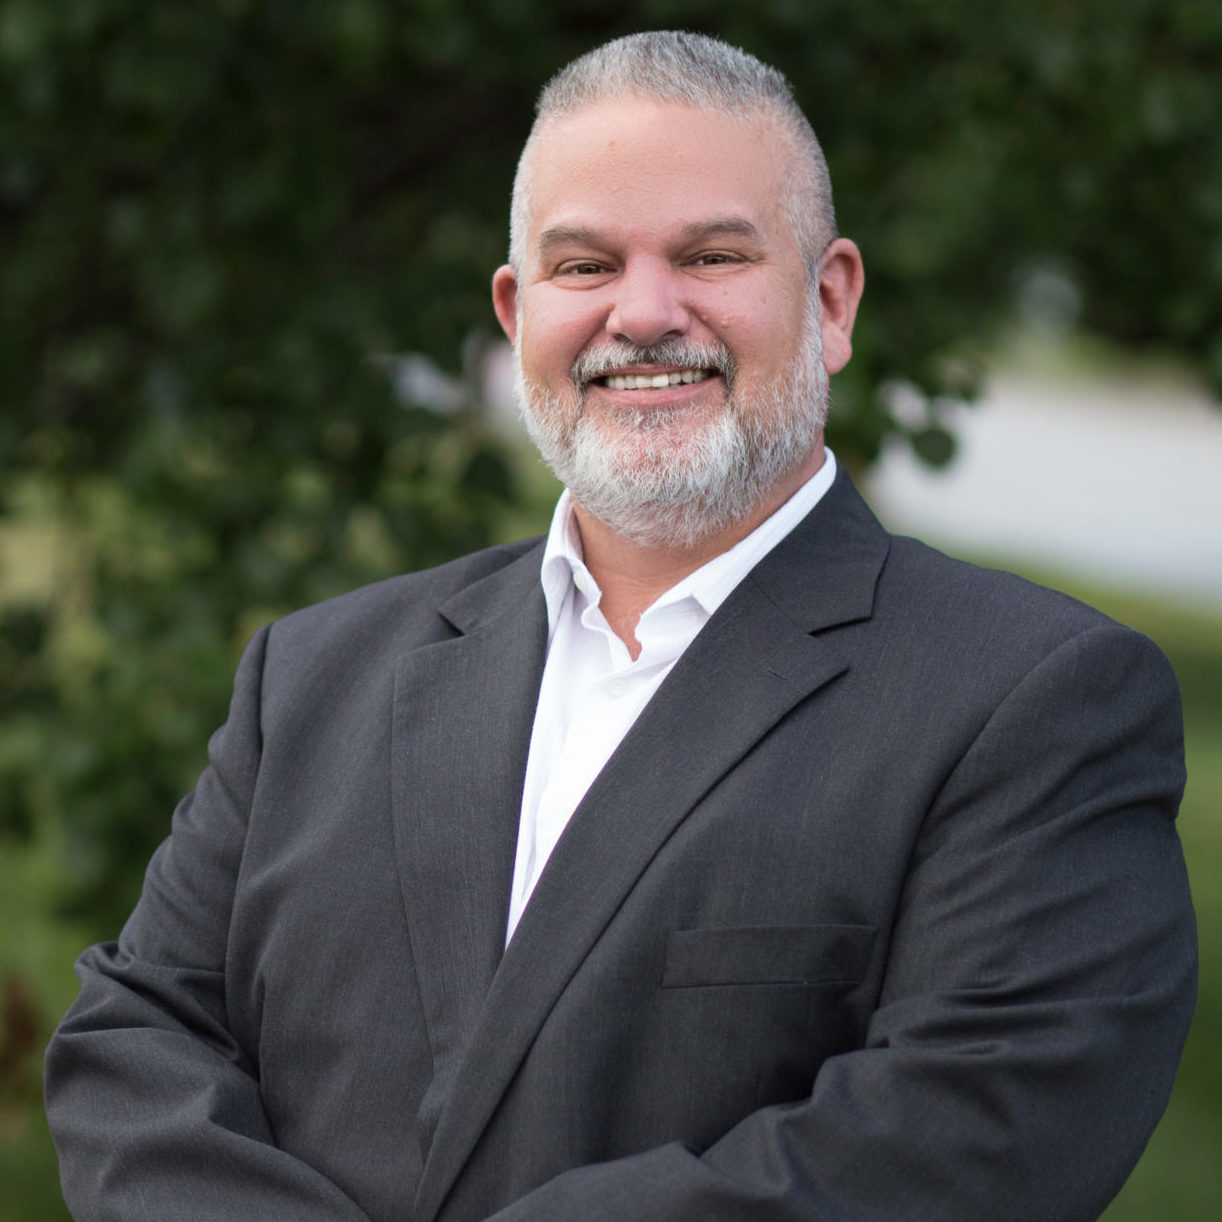 Dwayne Dever Vice President and Chief Information Officer headshot.